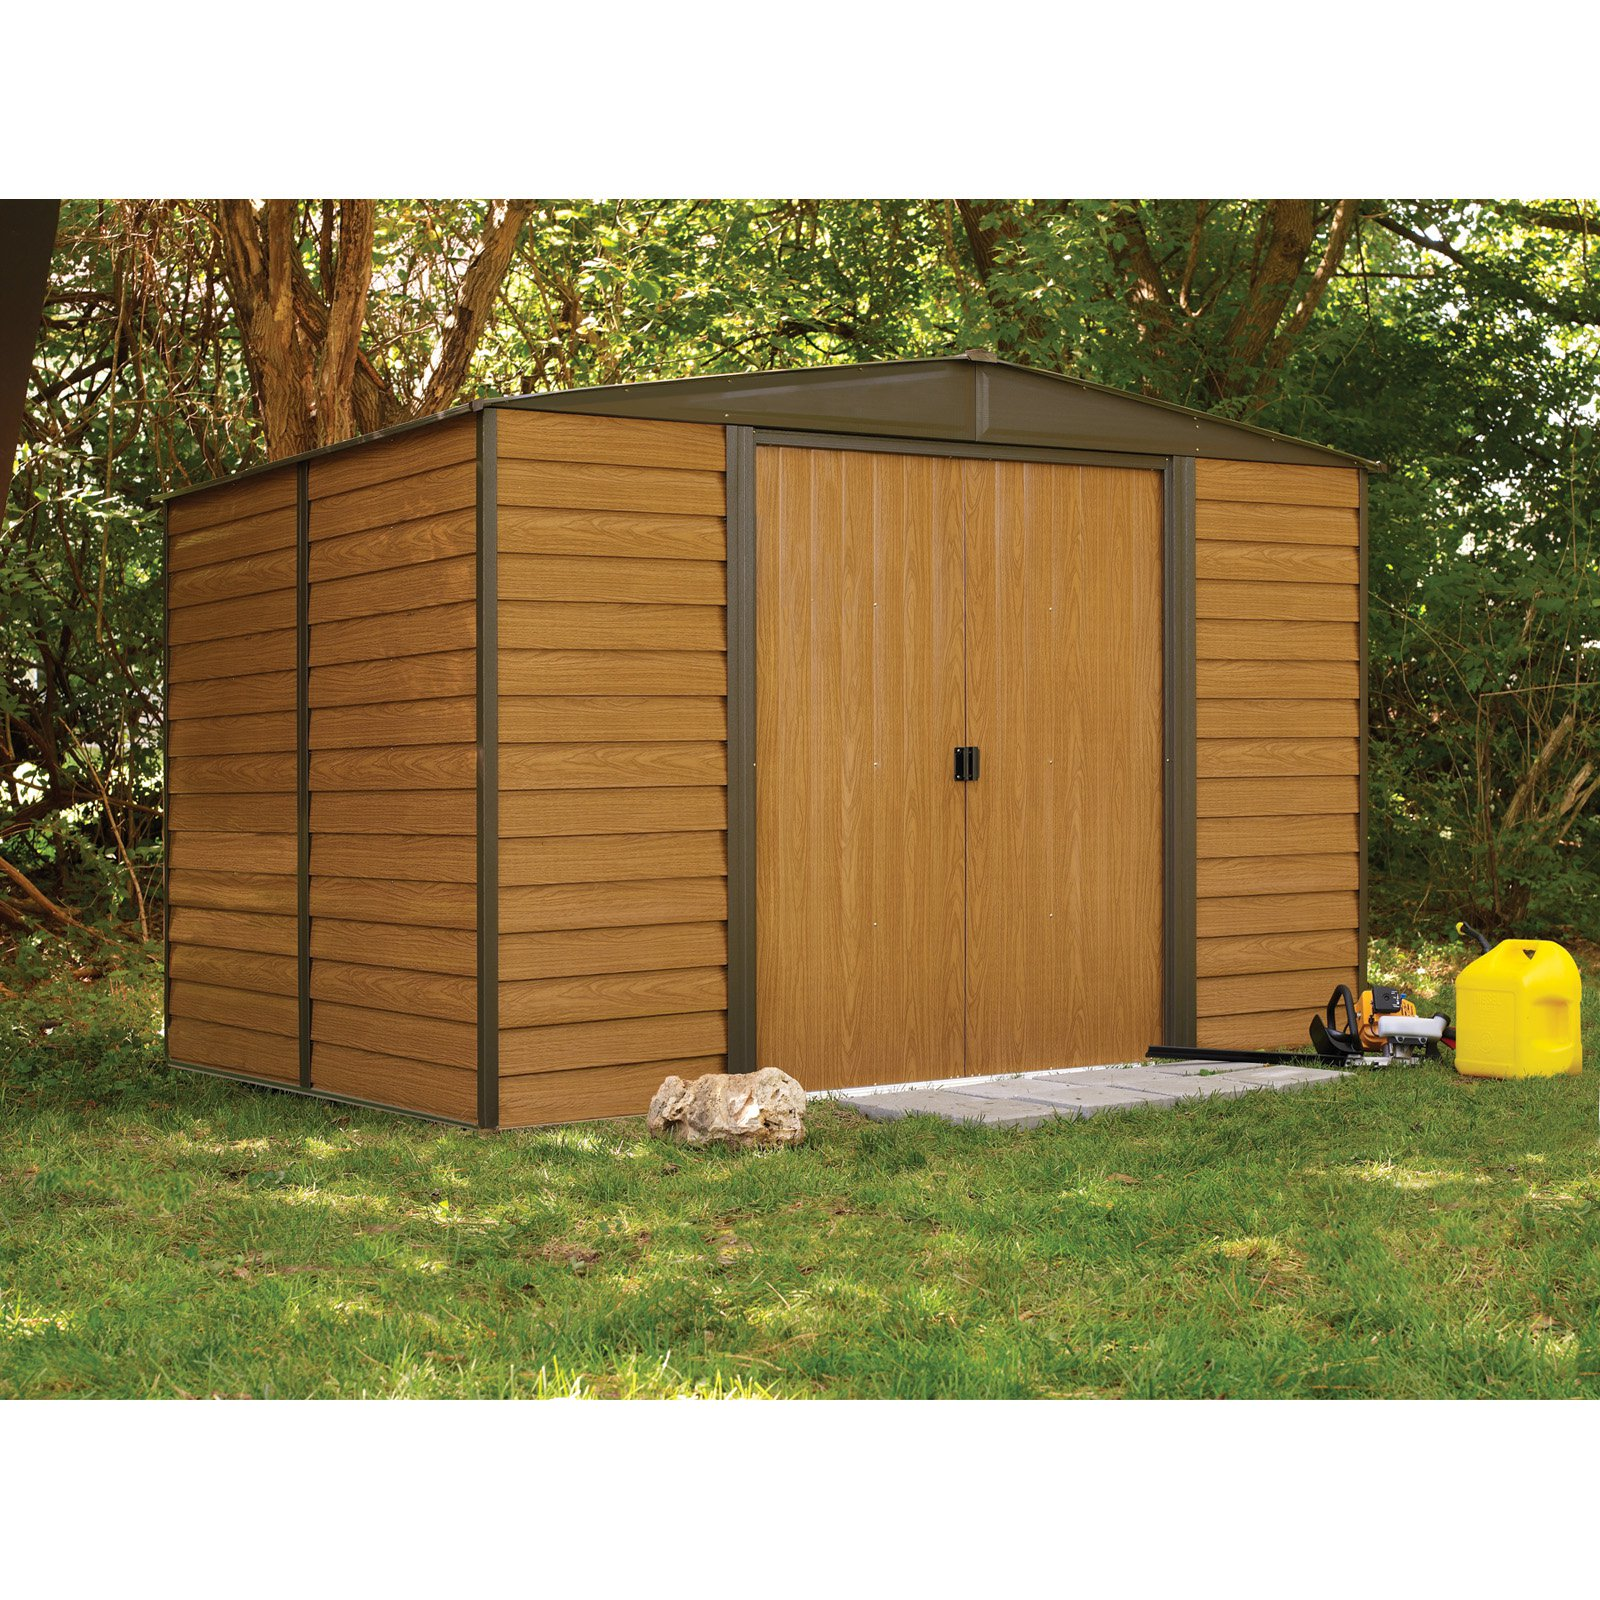 Arrow Shed Woodridge 10 x 6 ft. Steel Storage Shed